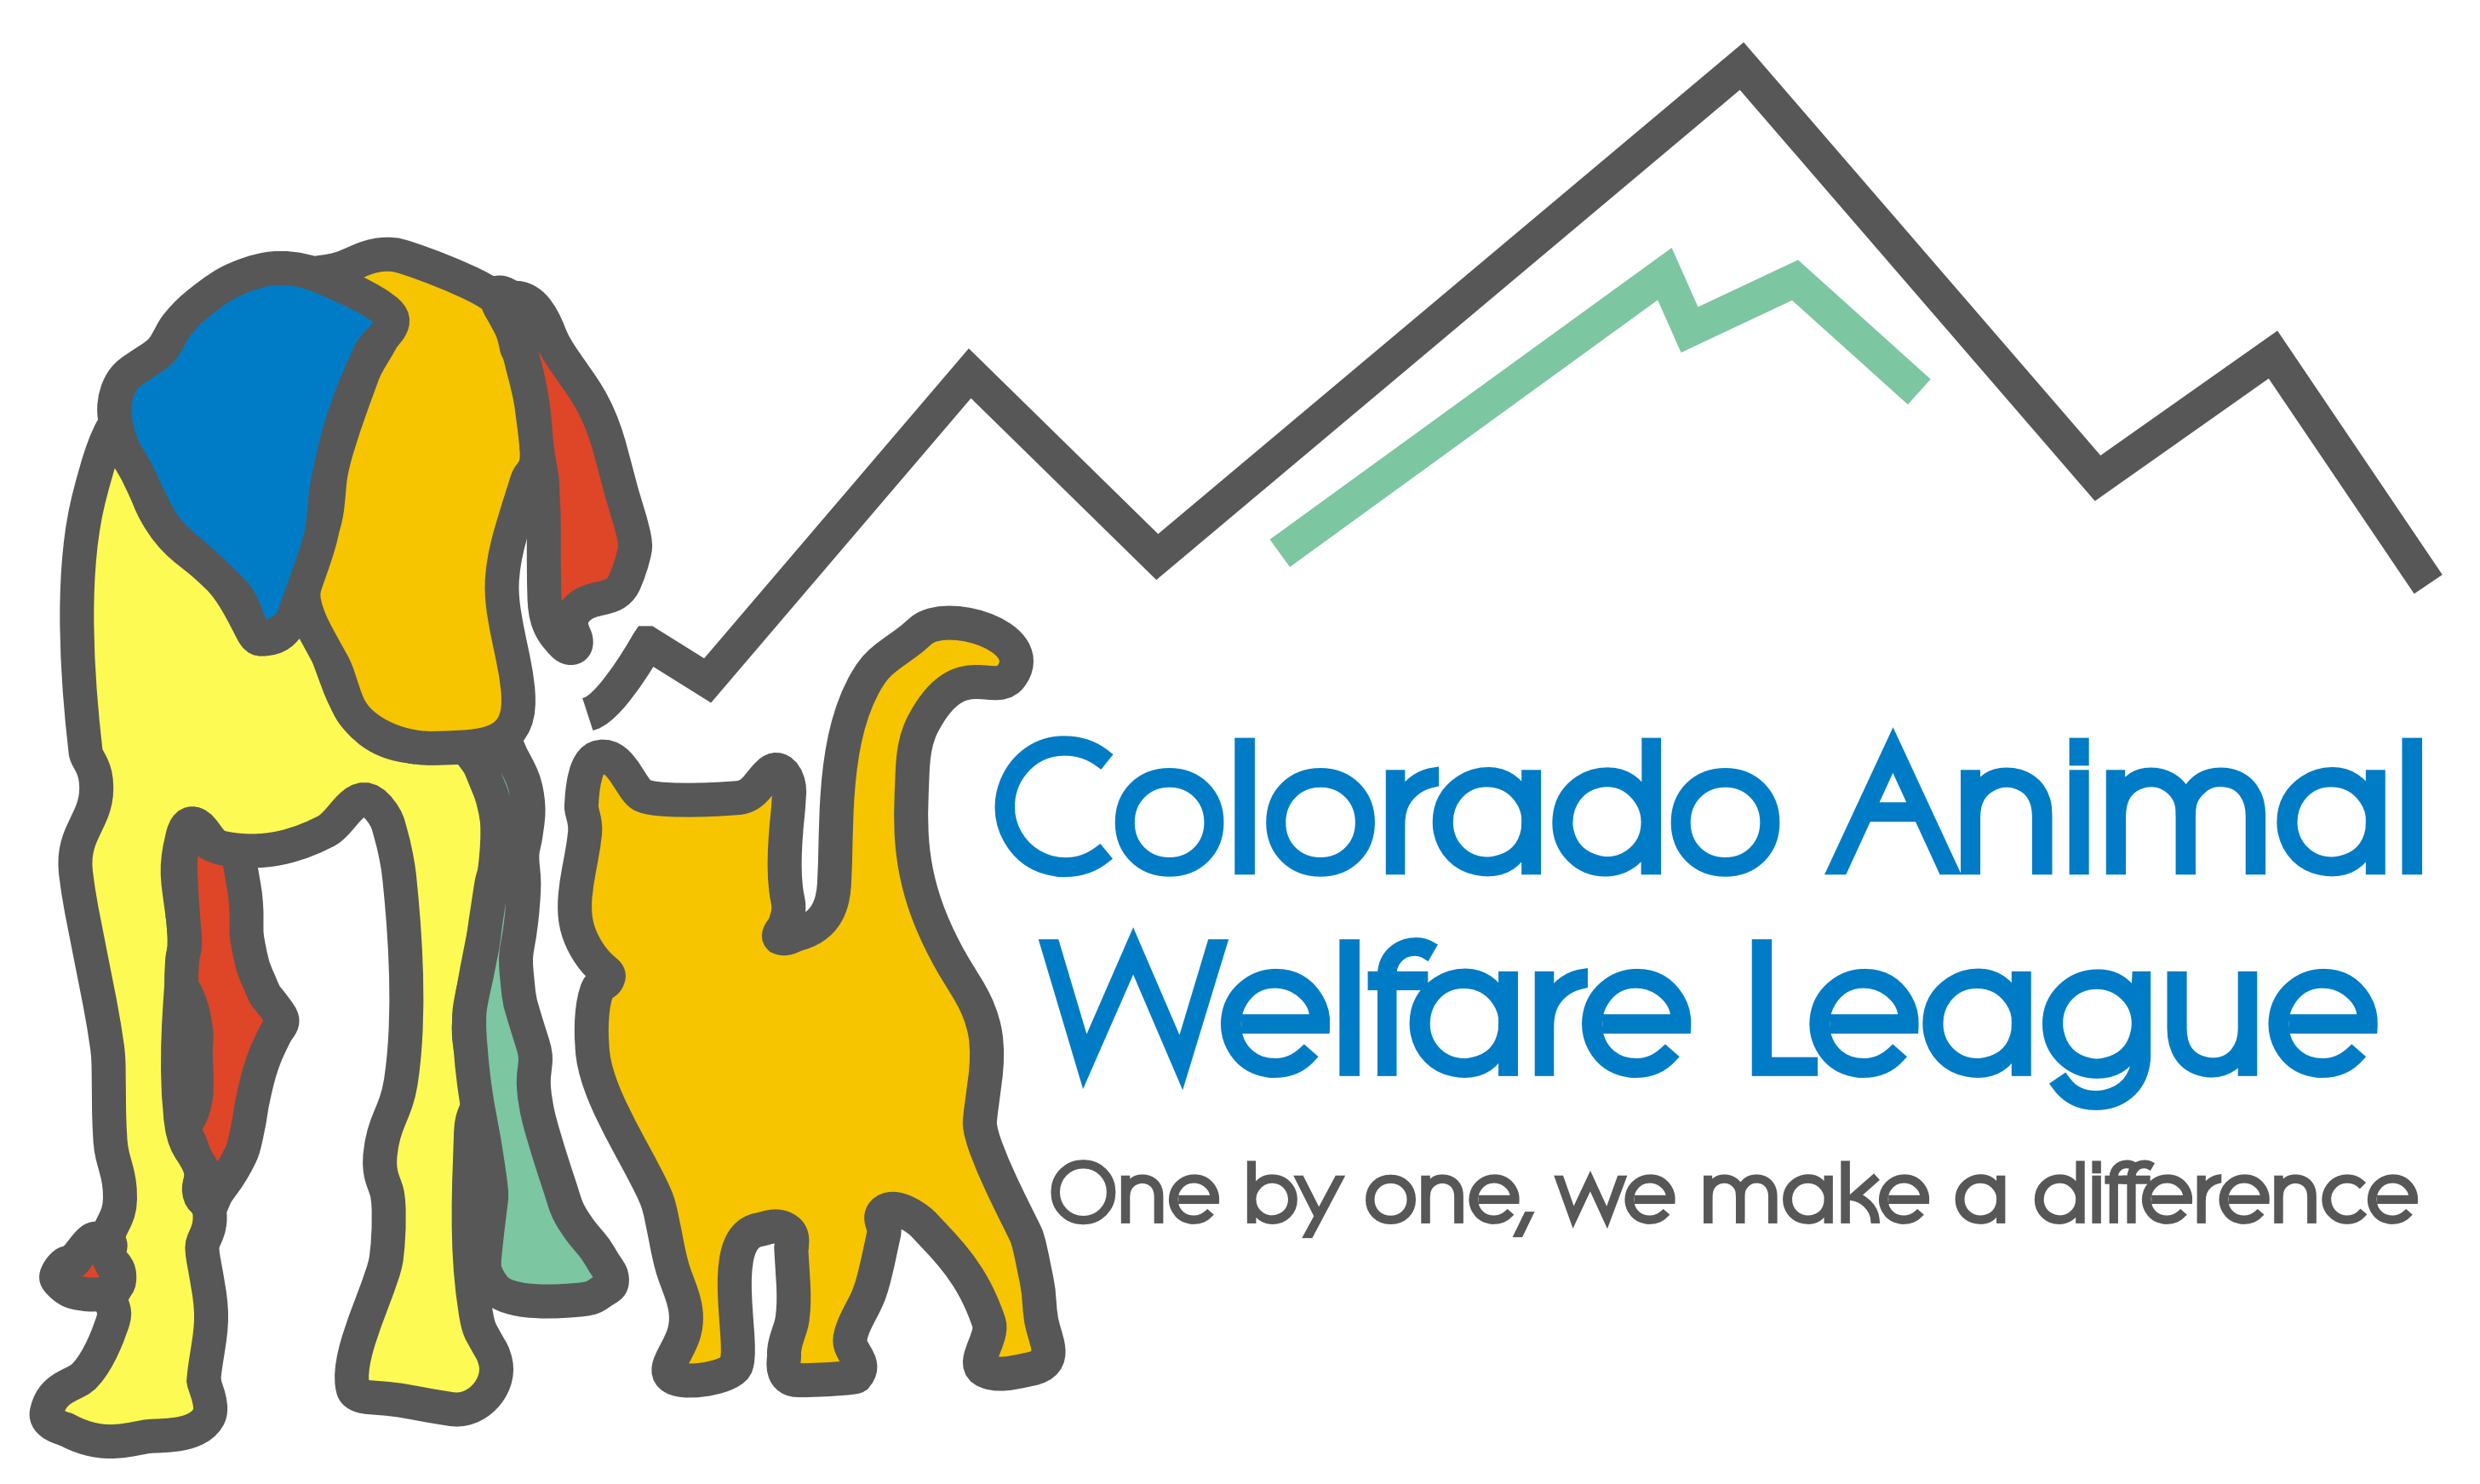 Web Image: Colorado Animal Welfare League